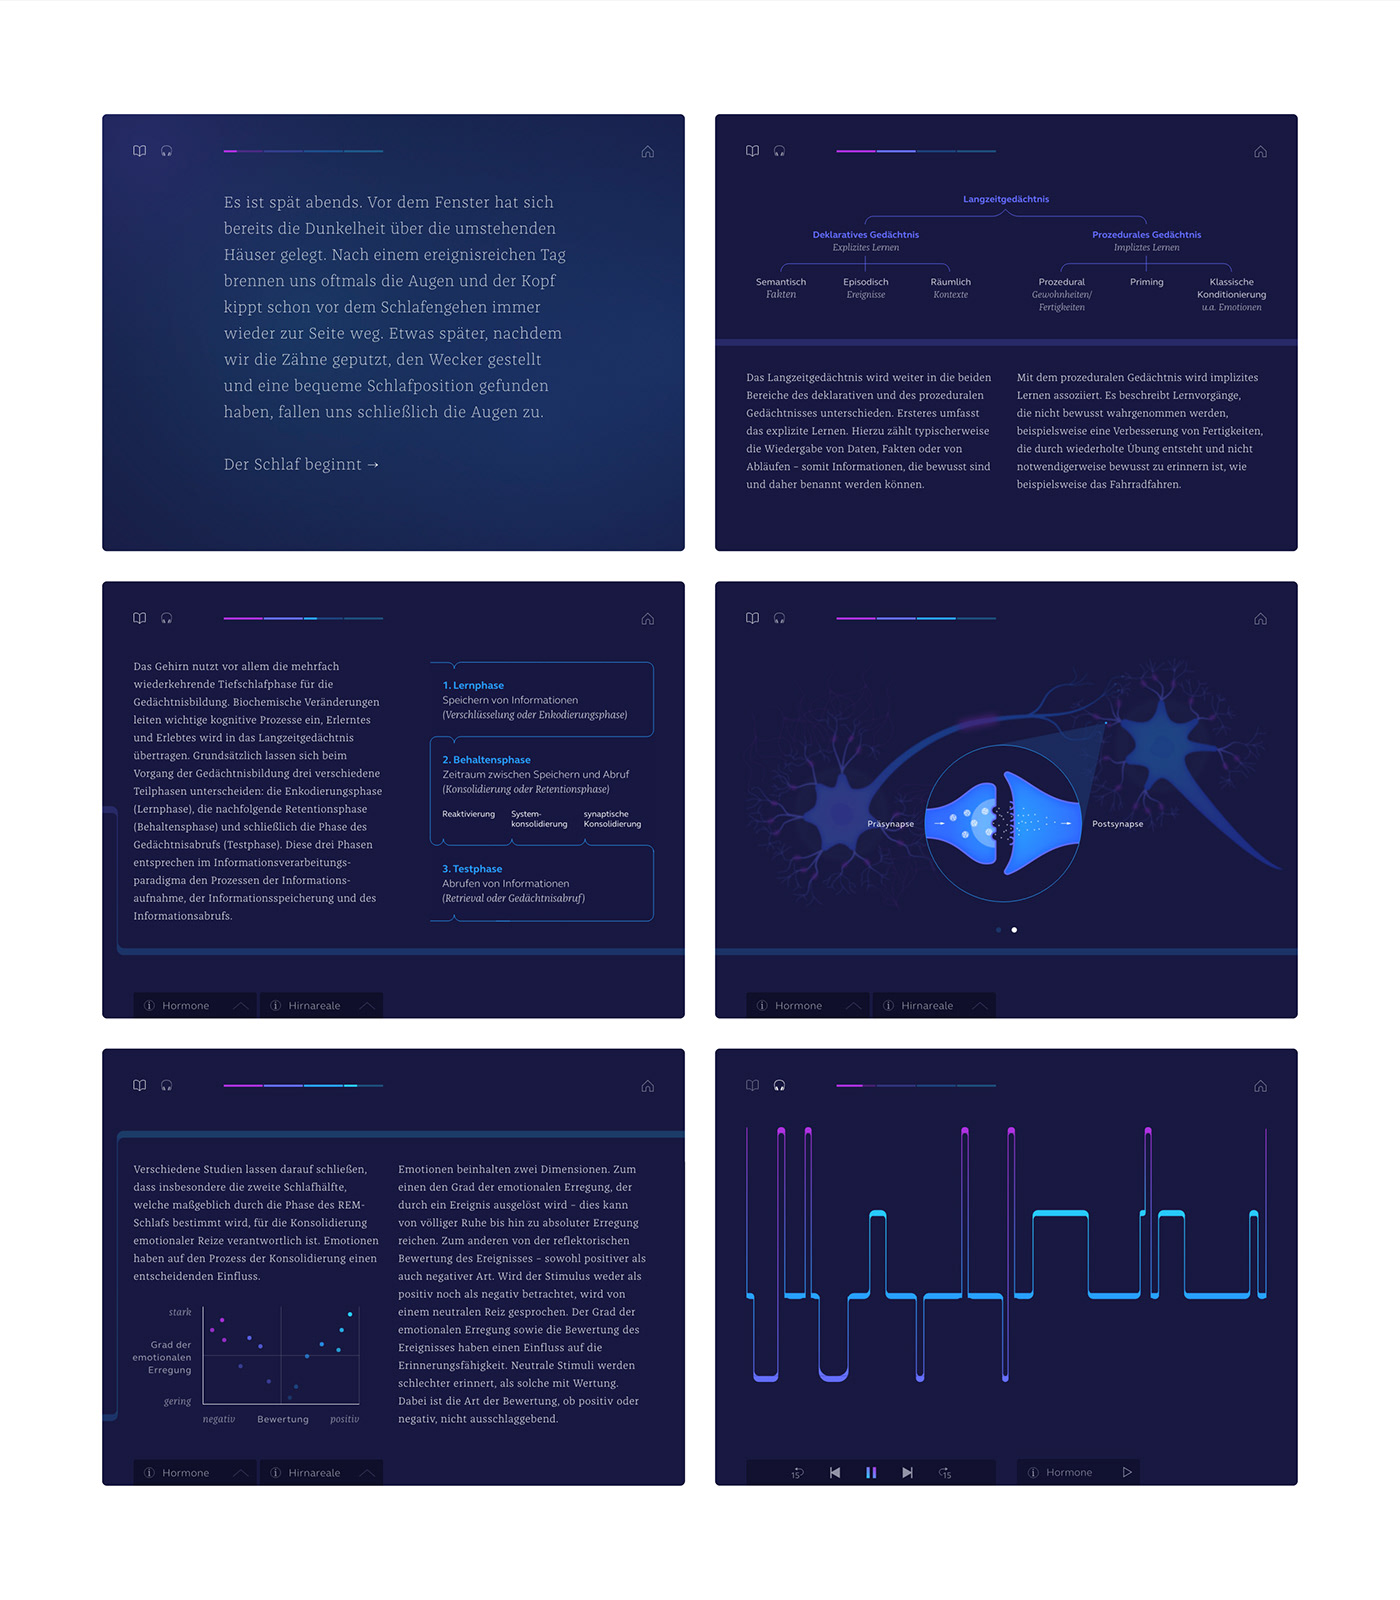 audioguide Cognition journalism   memory formation microsite narration processes sleep